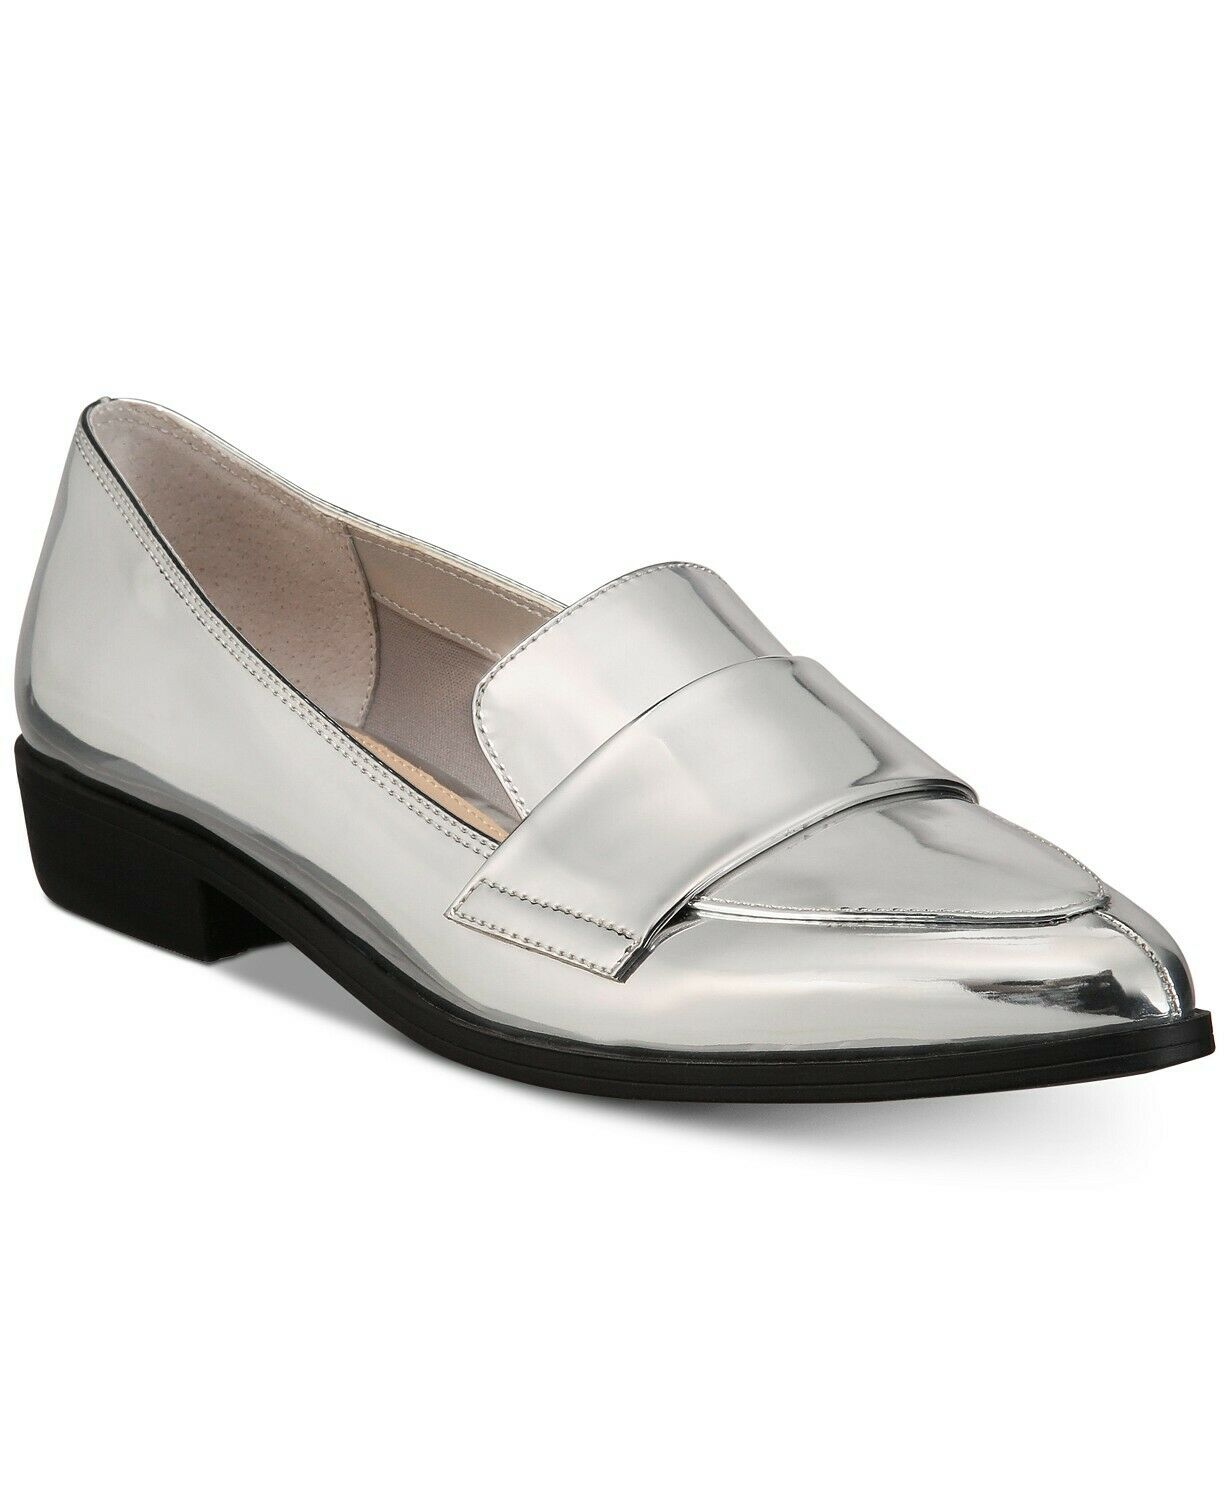 Bar III Womens Involve Pointed Toe Loafers, Silver, Size 8.0 EeWI US